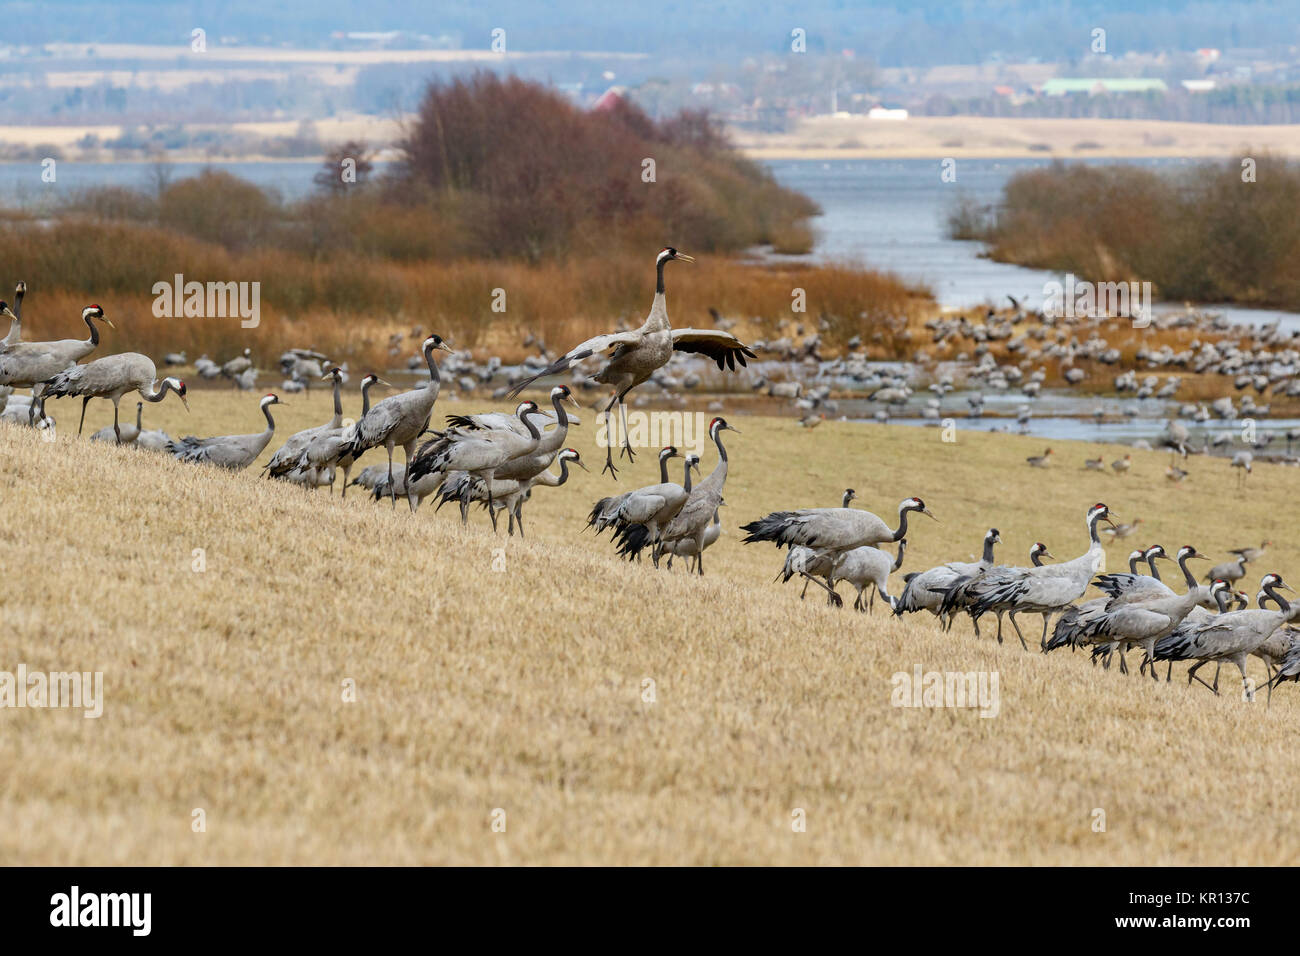 Dancing Cranes on a field Stock Photo